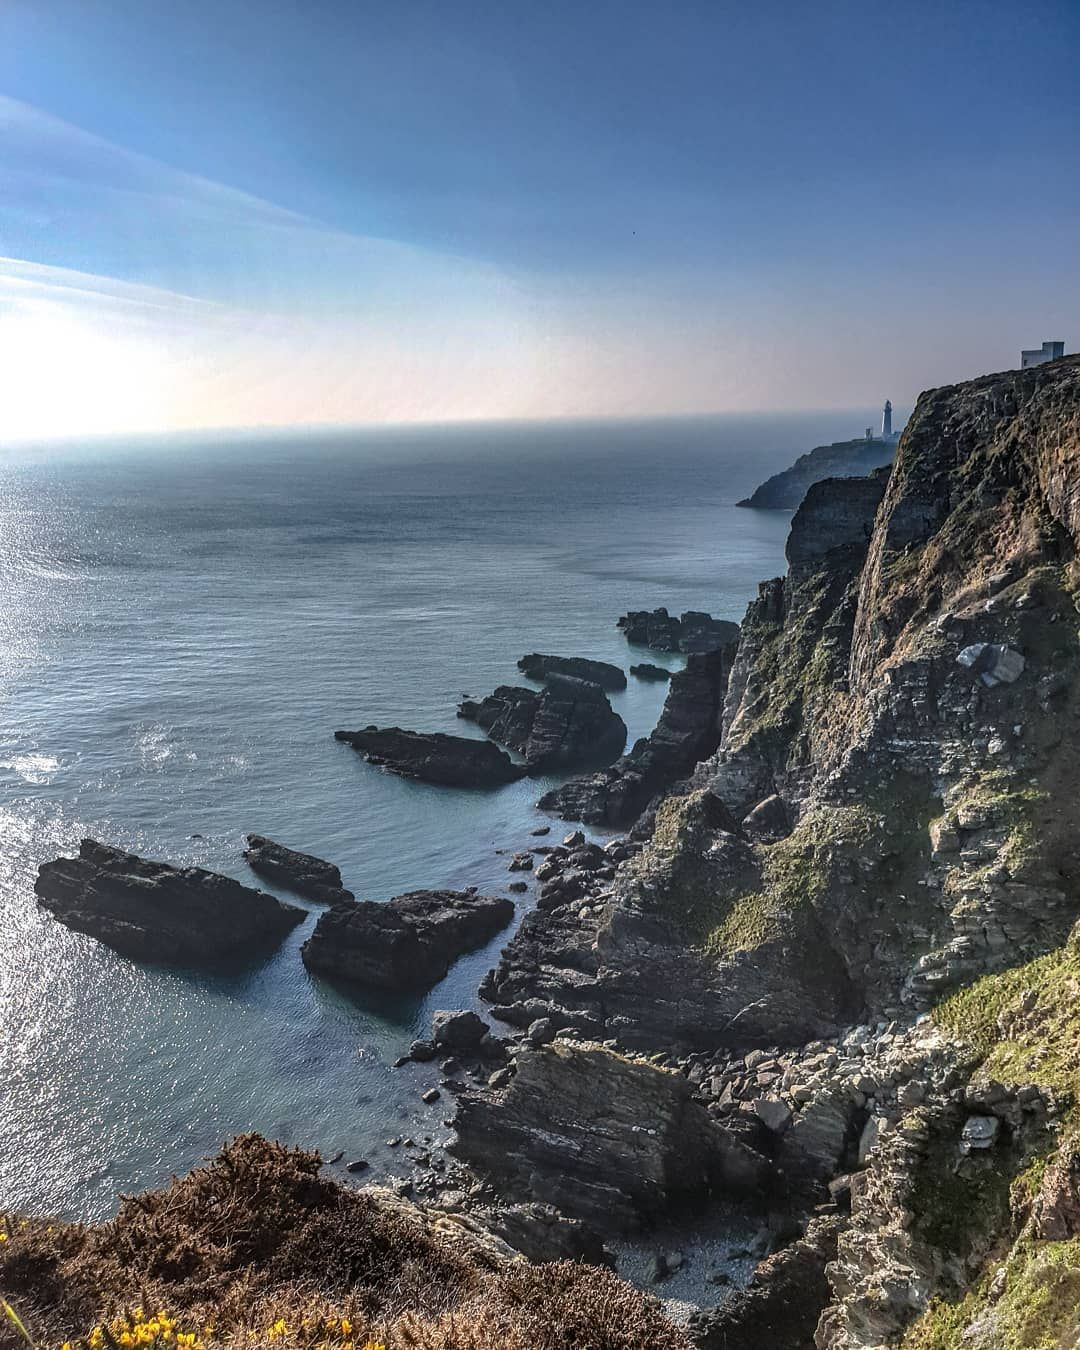 Quick pic at South Stack North Wales. #sea #sky #lighthouse #rock #cliff #picoftheday #blue #green  Quick pic at South Stack North Wales.  #sea #sky #lighthouse #rock #cliff #picoftheday #blue #green #amazing #awesome #outdoors #water #sun #photography #travel #views #cool #life #northwales